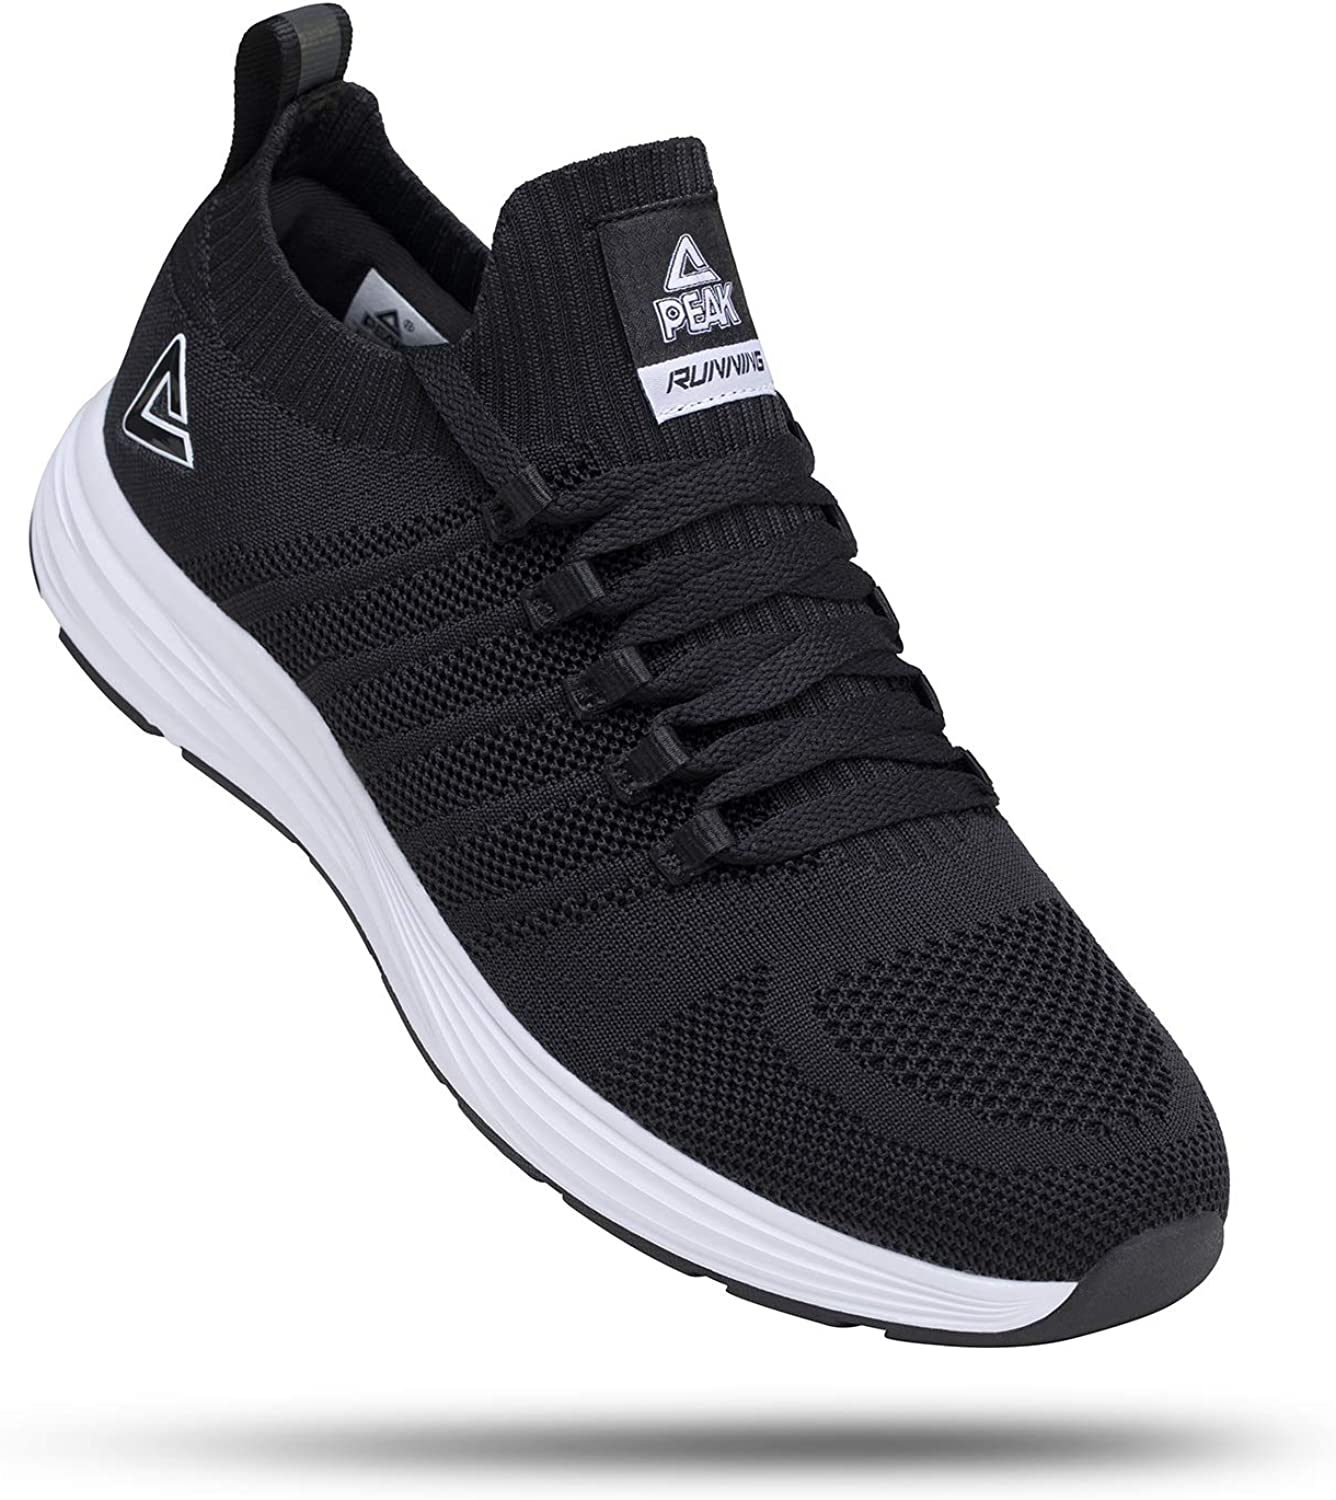 slip on workout sneakers